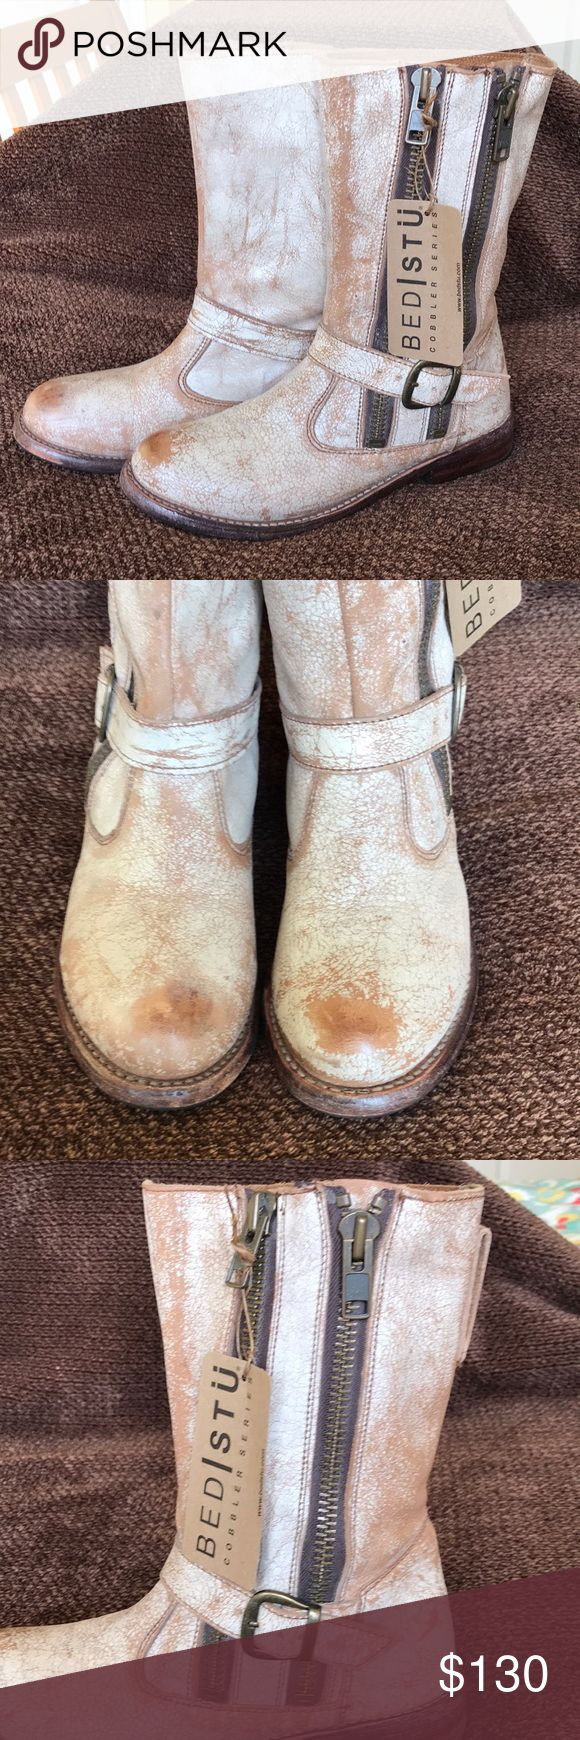 Bed Stu Hustle boots Bed Stu Hustle boots cobbler series.  Color is Nectar Lux. They have a very distressed look to them but no scratches or damage.  In very good condition. With original box. Bed Stu Shoes Combat & Moto Boots